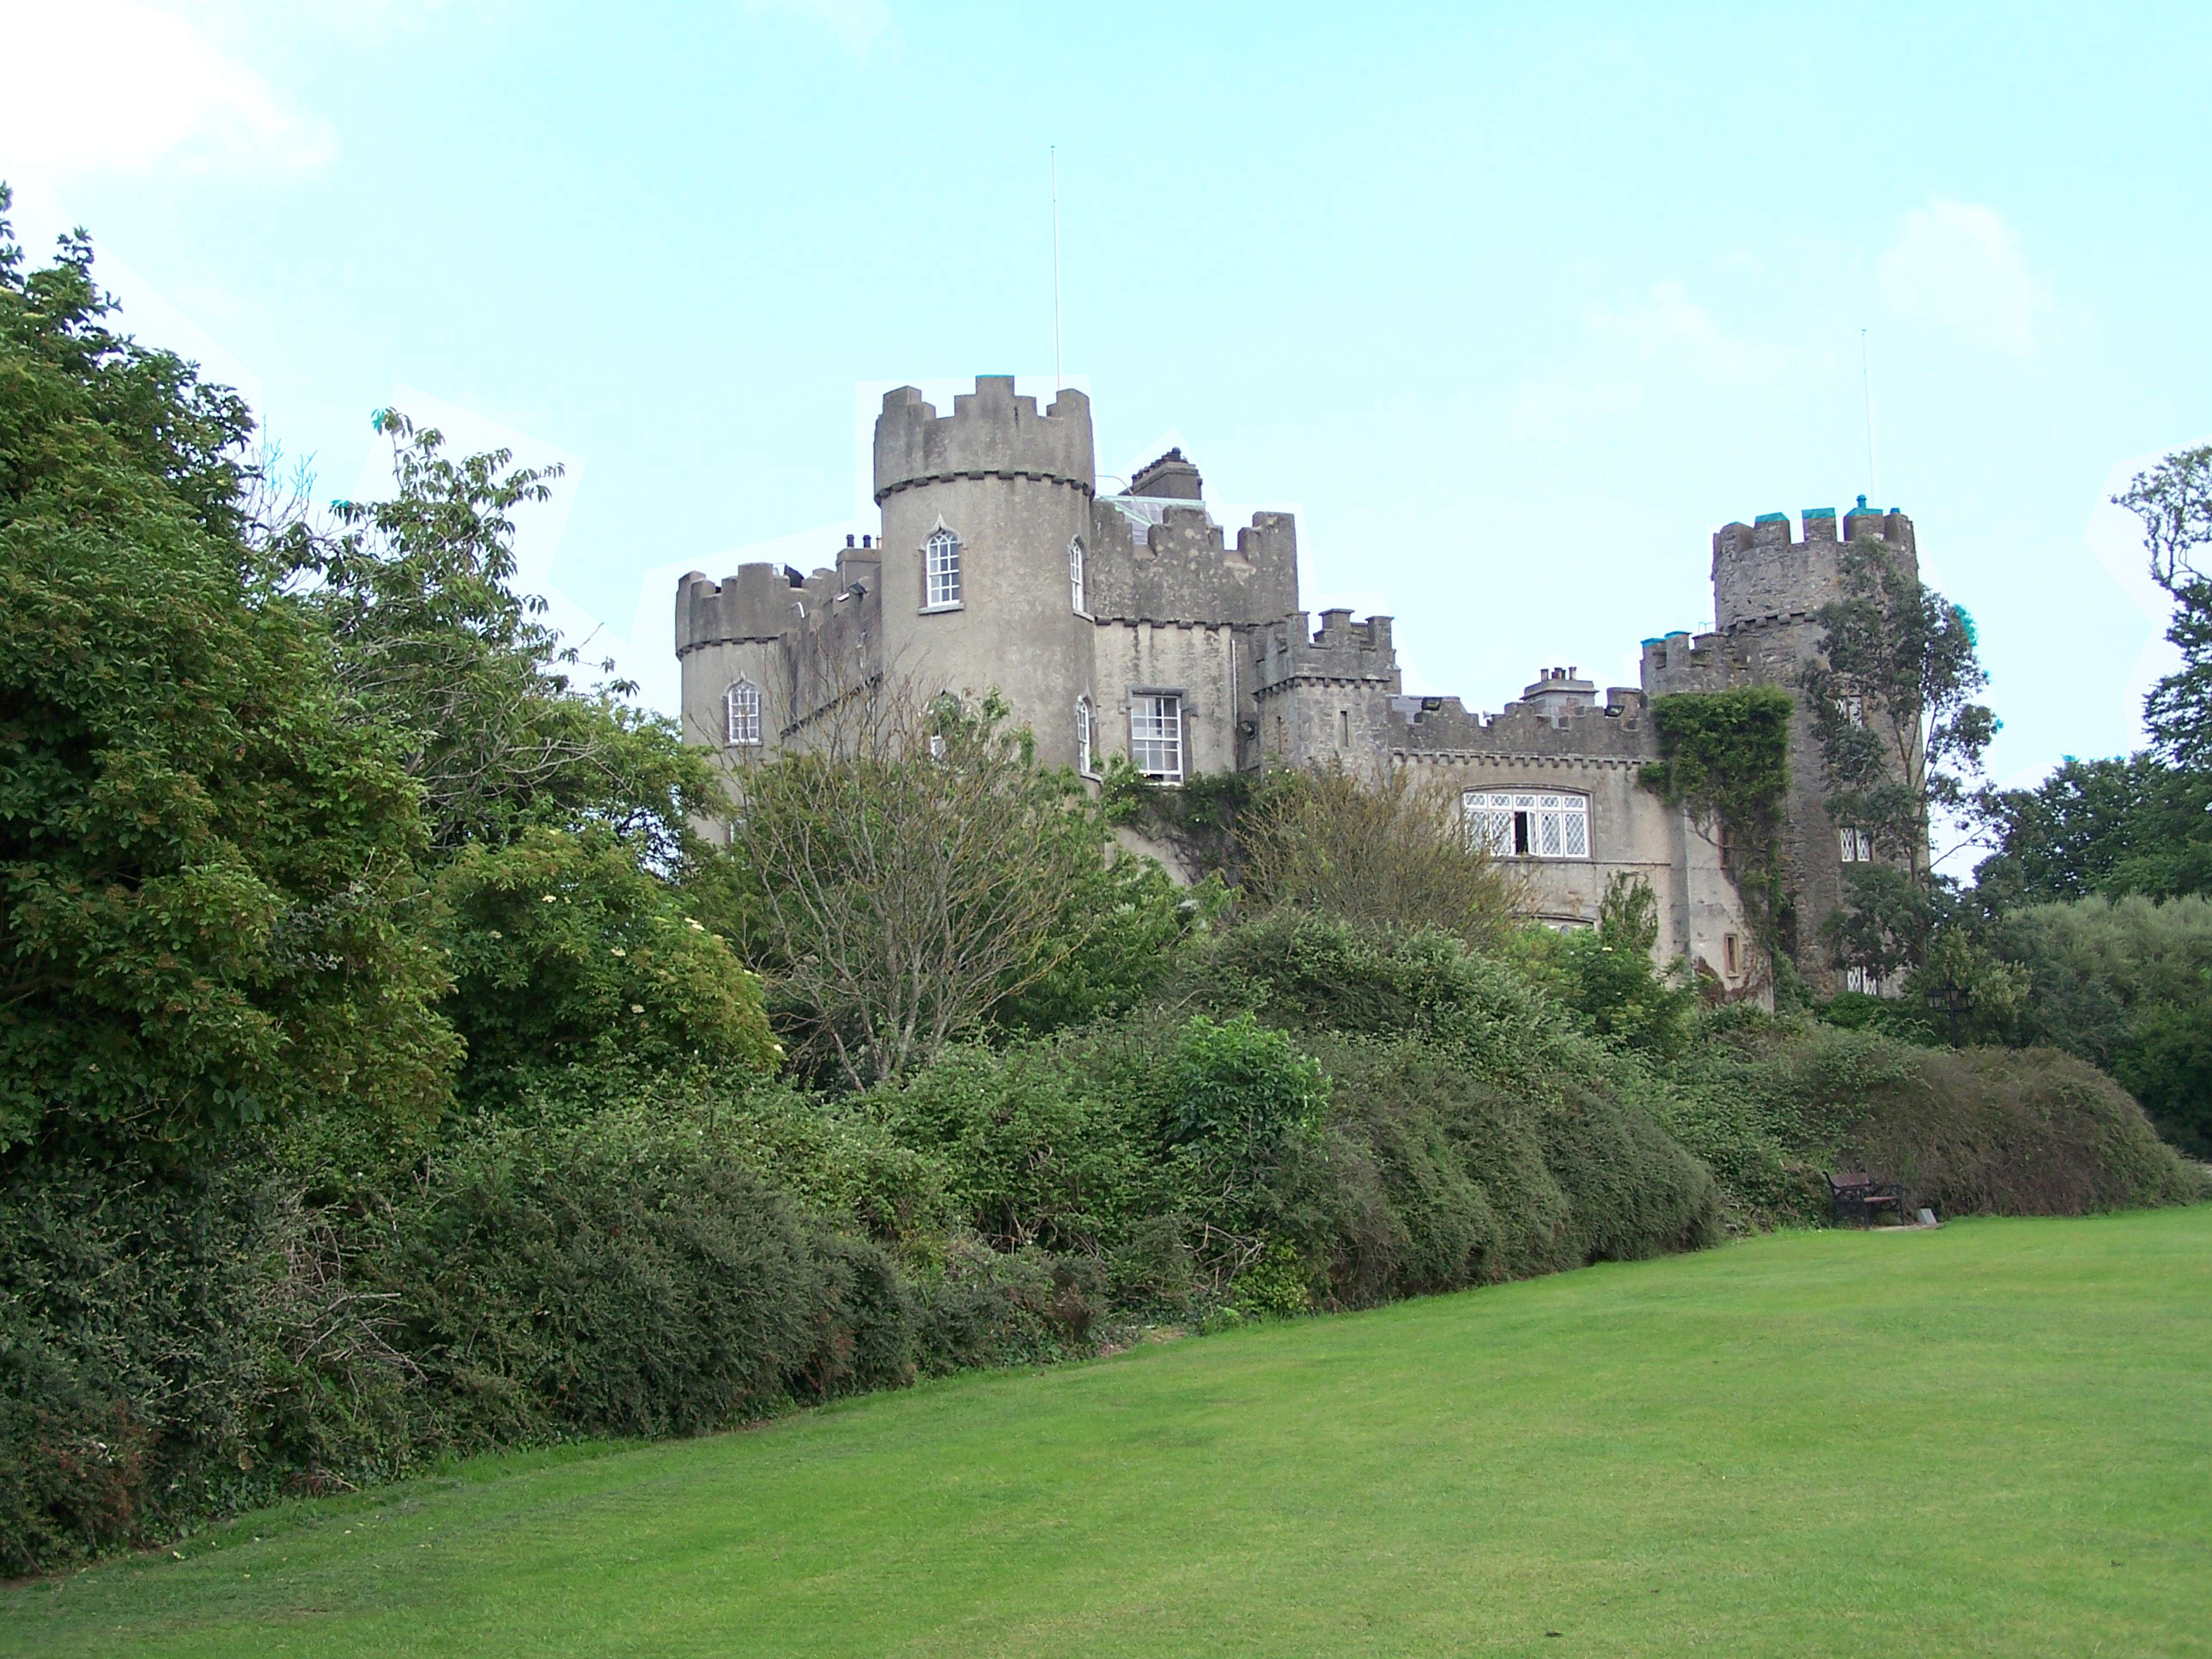 Wallpaper downloads windows wallpaper Malahide Castle   Dublin 2576x1932